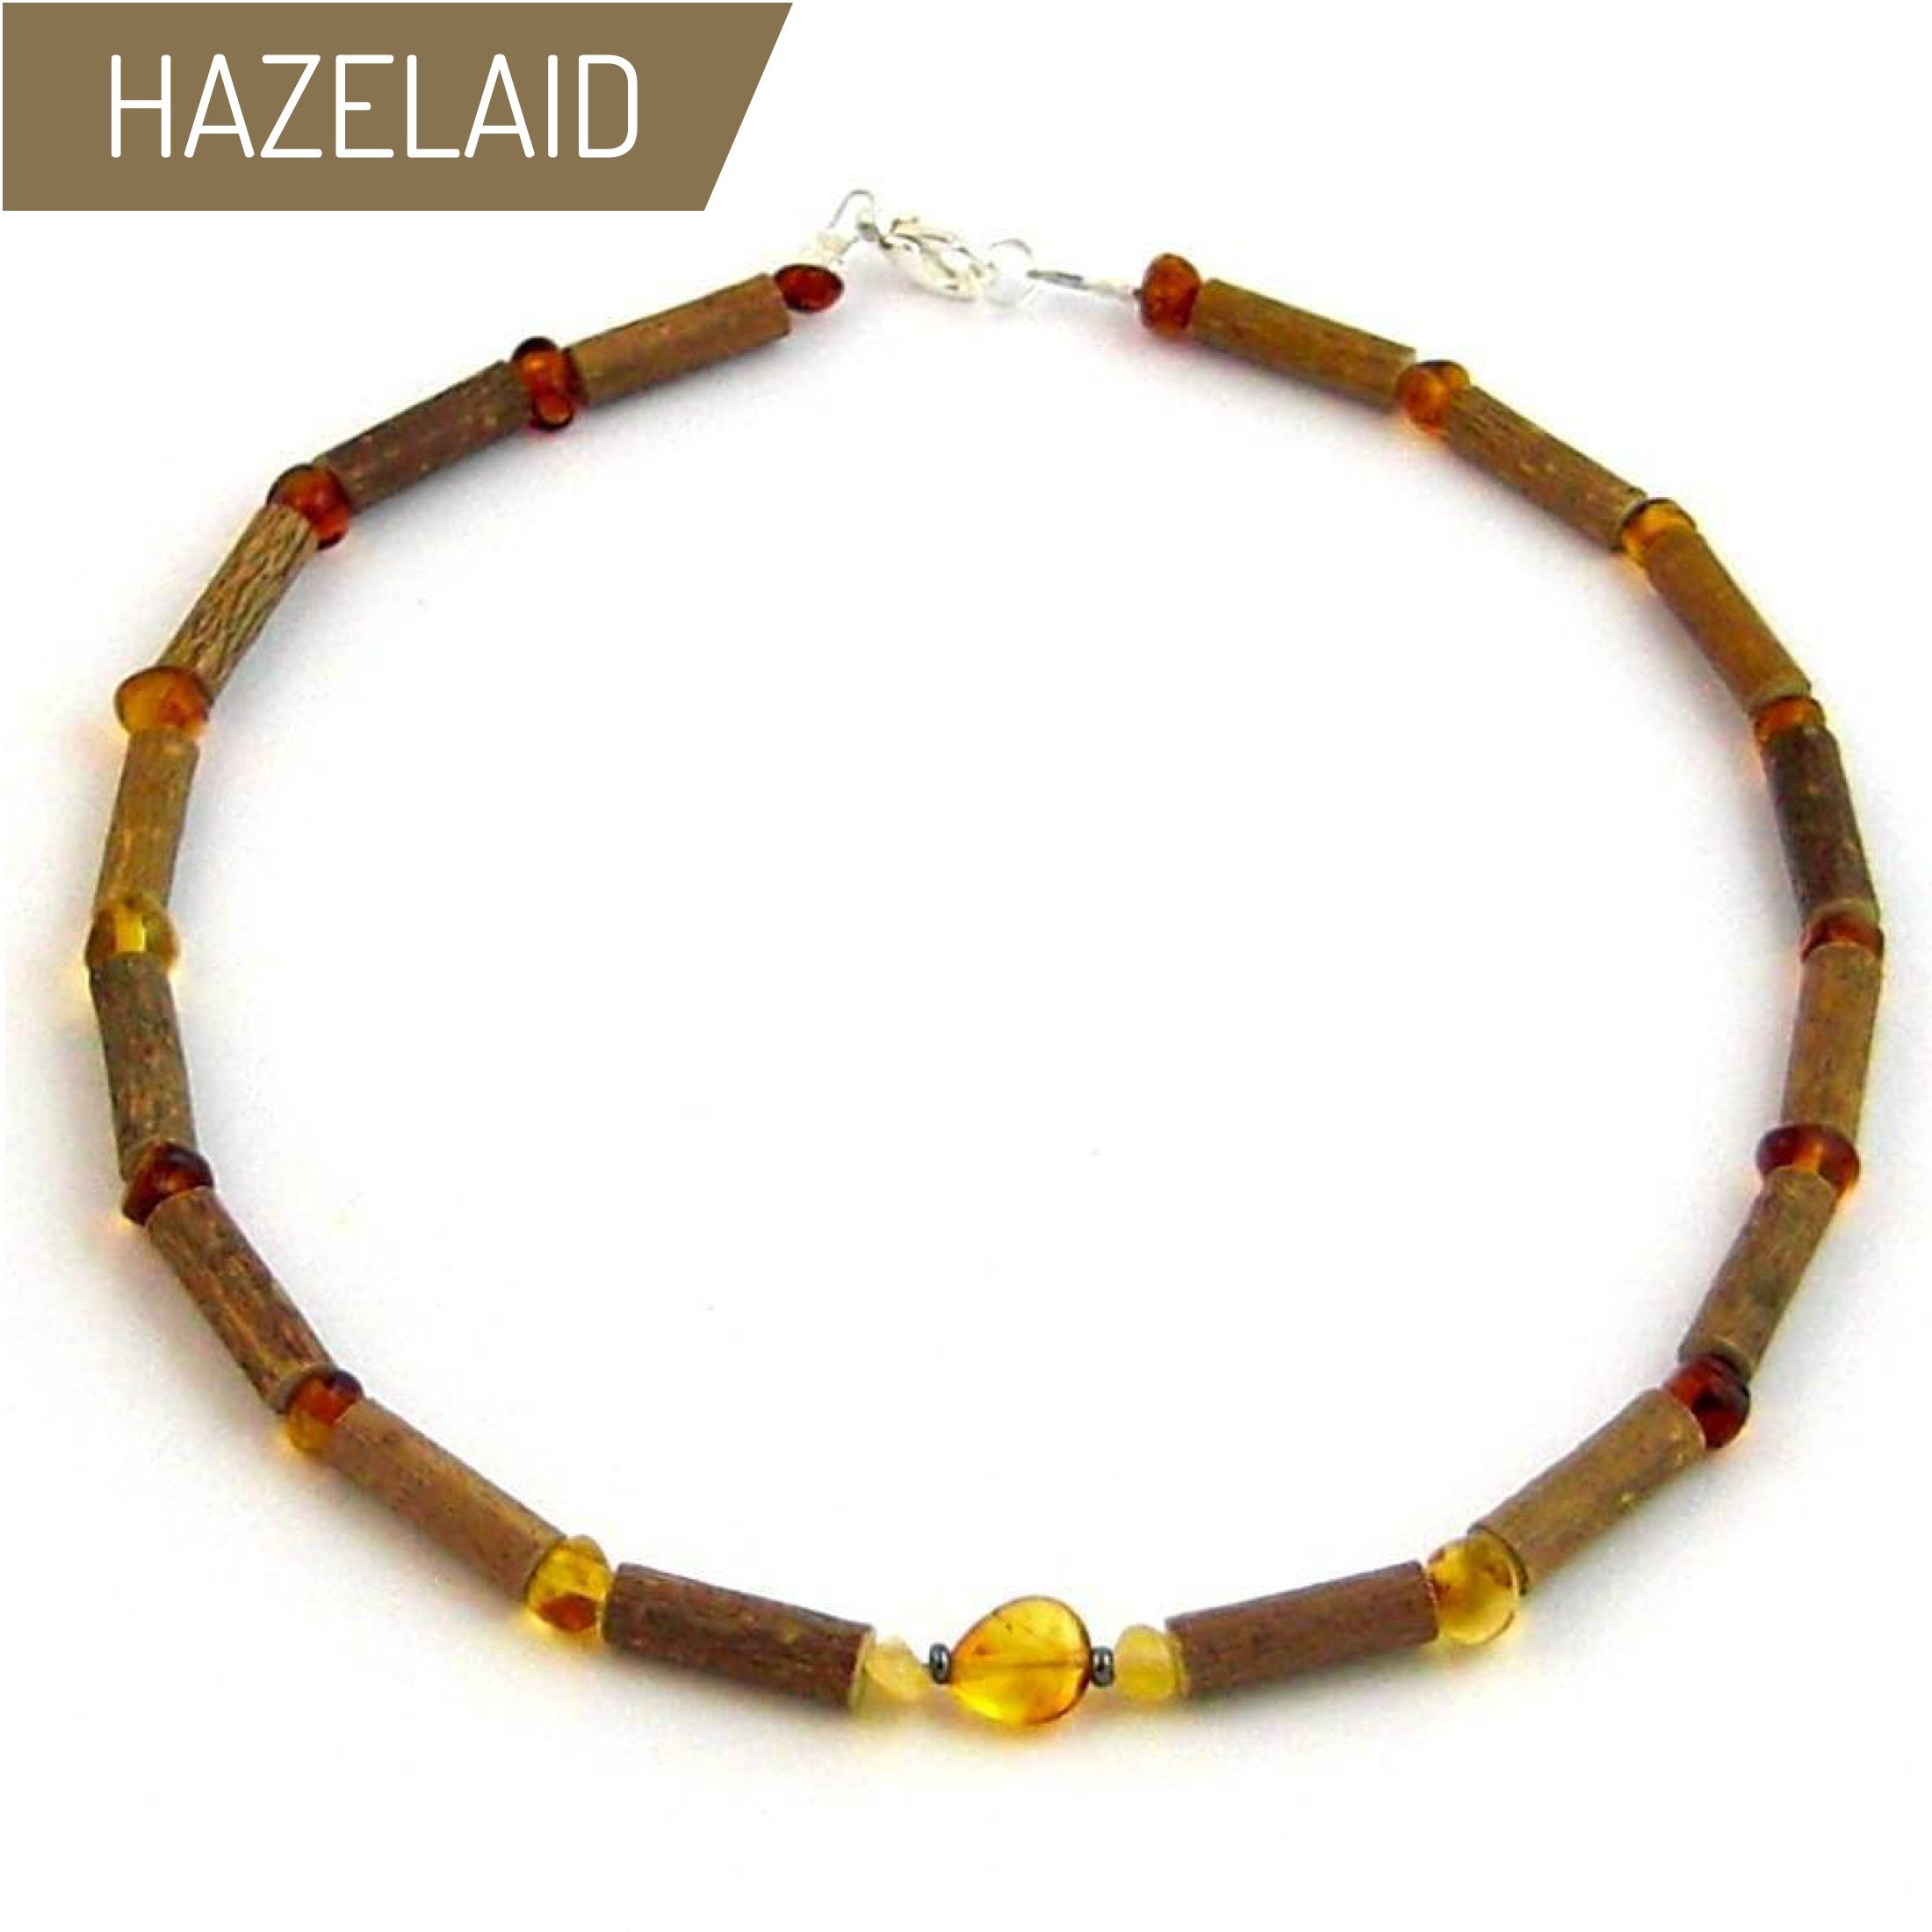 Hazelaid (TM) Child Hazelwood-Amber Necklace - 13.5'' Honey